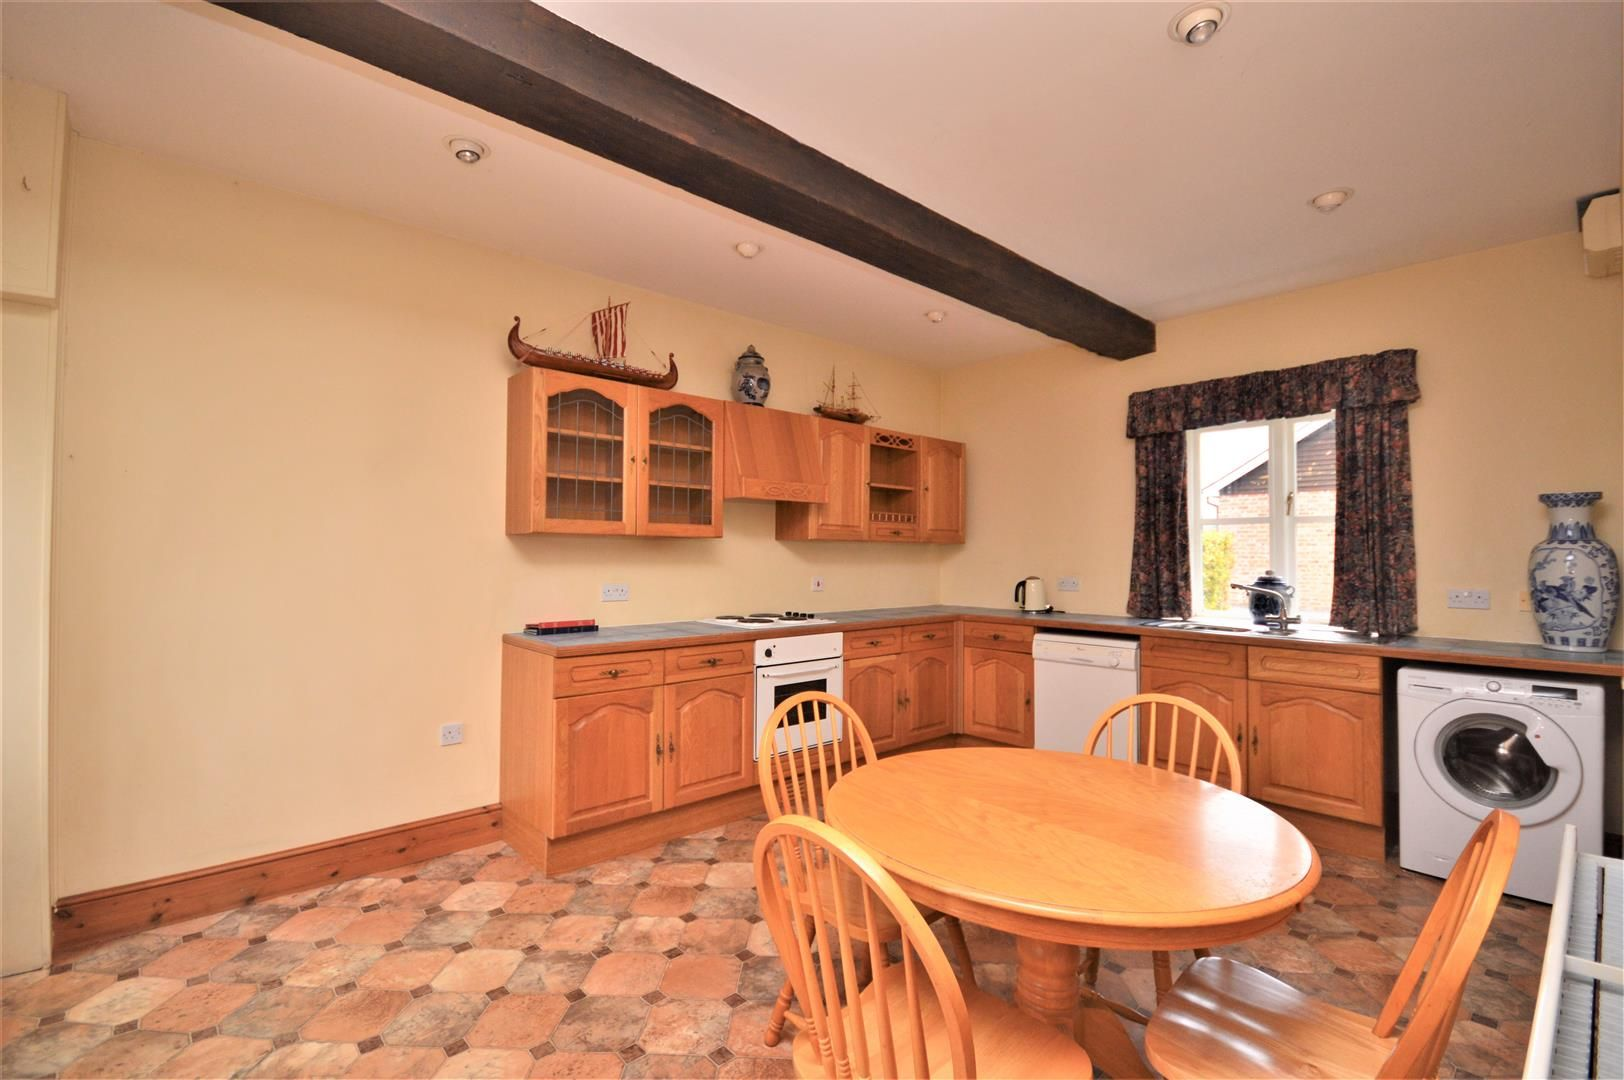 4 bed semi-detached for sale in Nr Madley 4